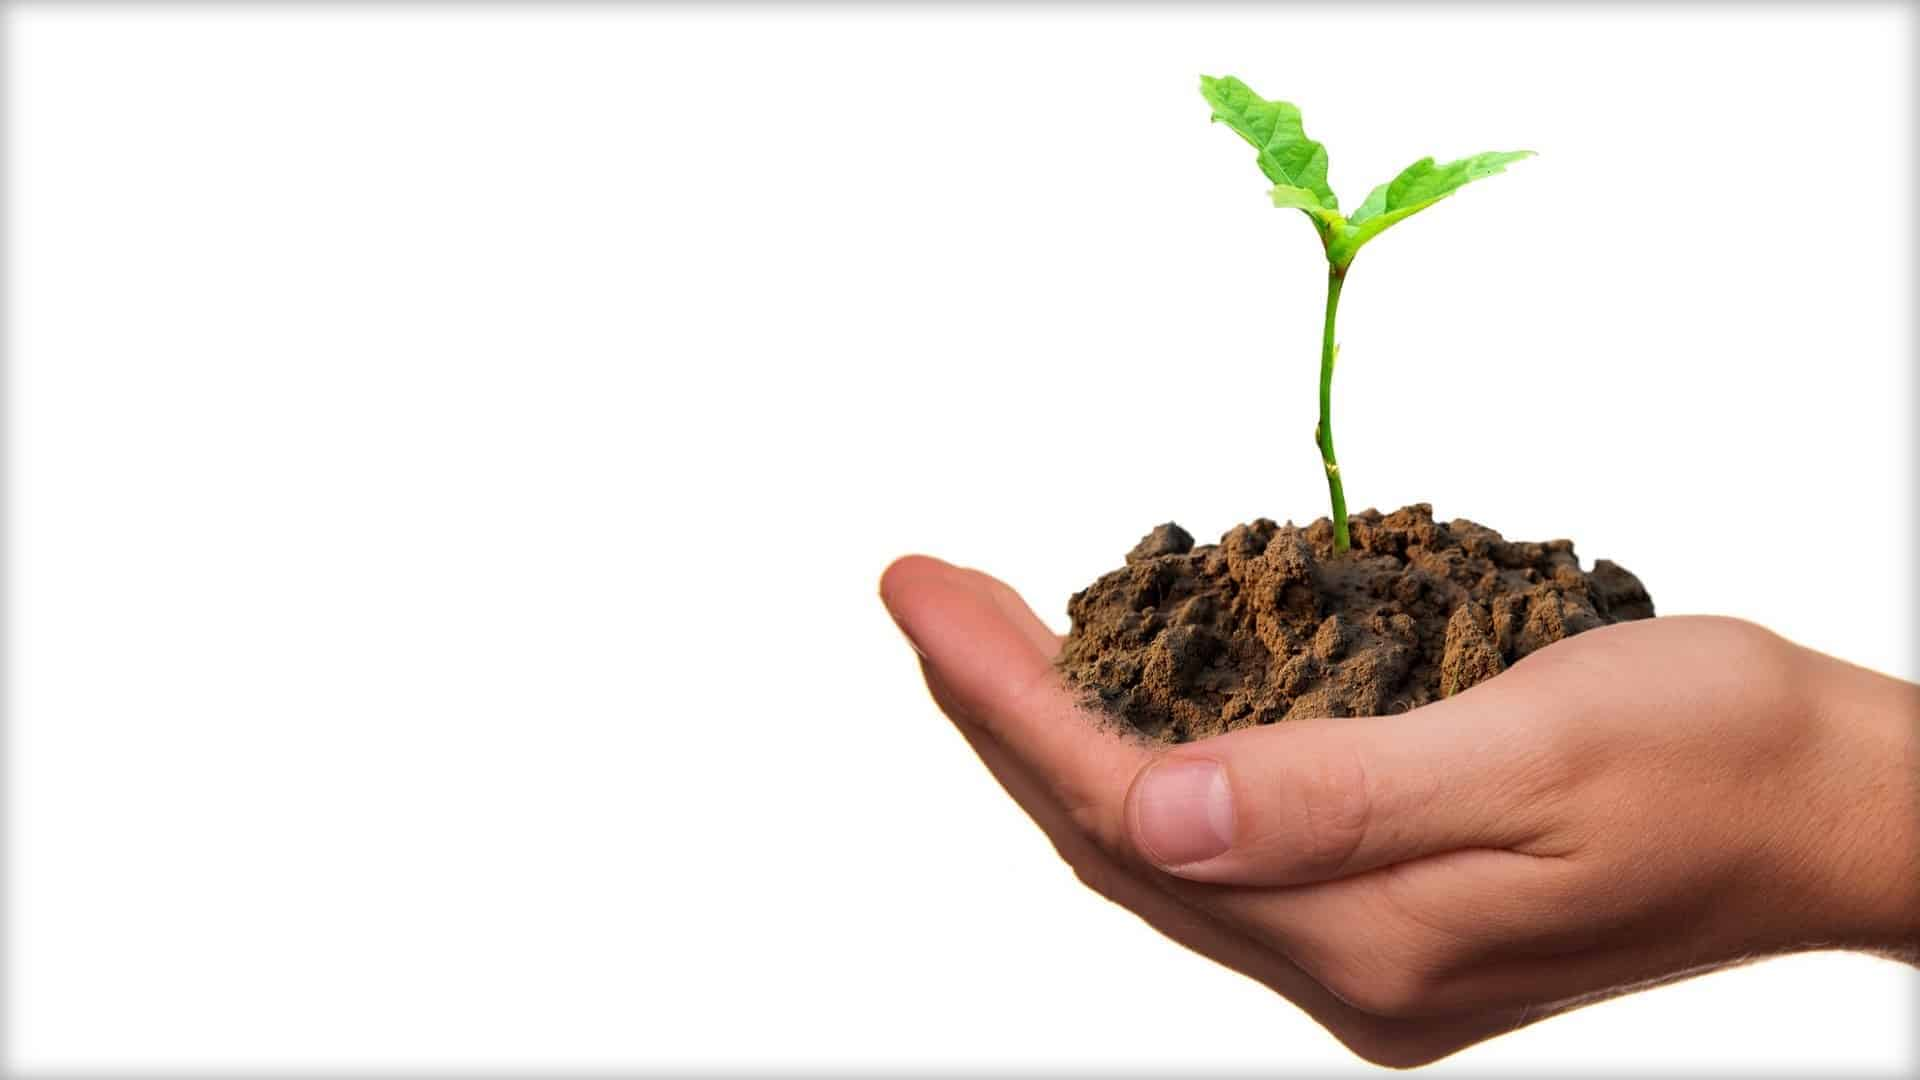 A close-up of a hand is shown. The hand is cupping a handful of soil with a small plant shoot growing out of it.